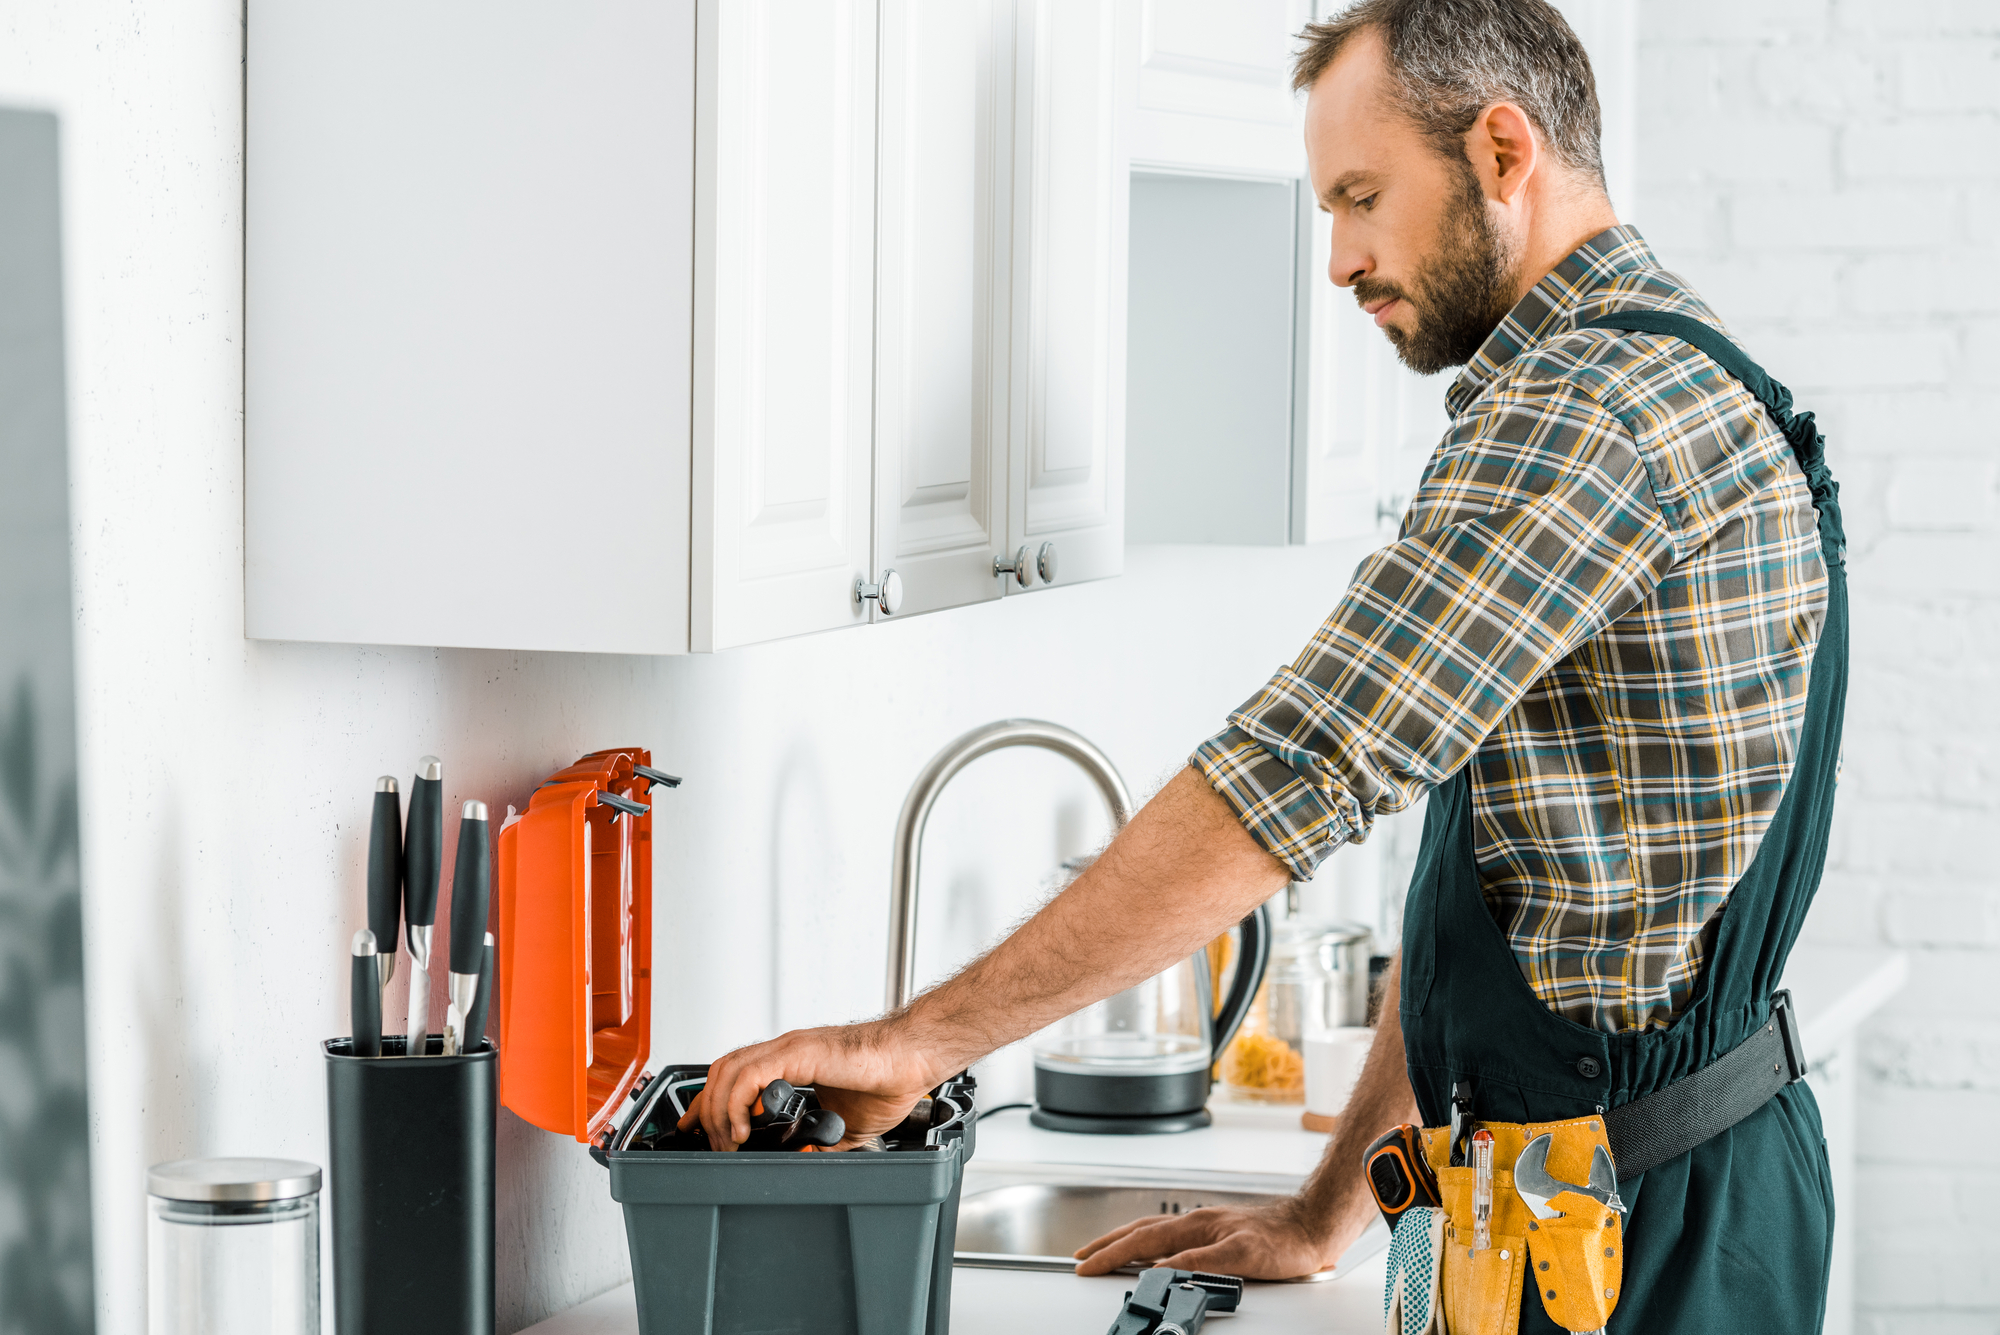 Handling Make-Readies on Your Own? 4 Reasons Not to DIY as a Jacksonville Landlord